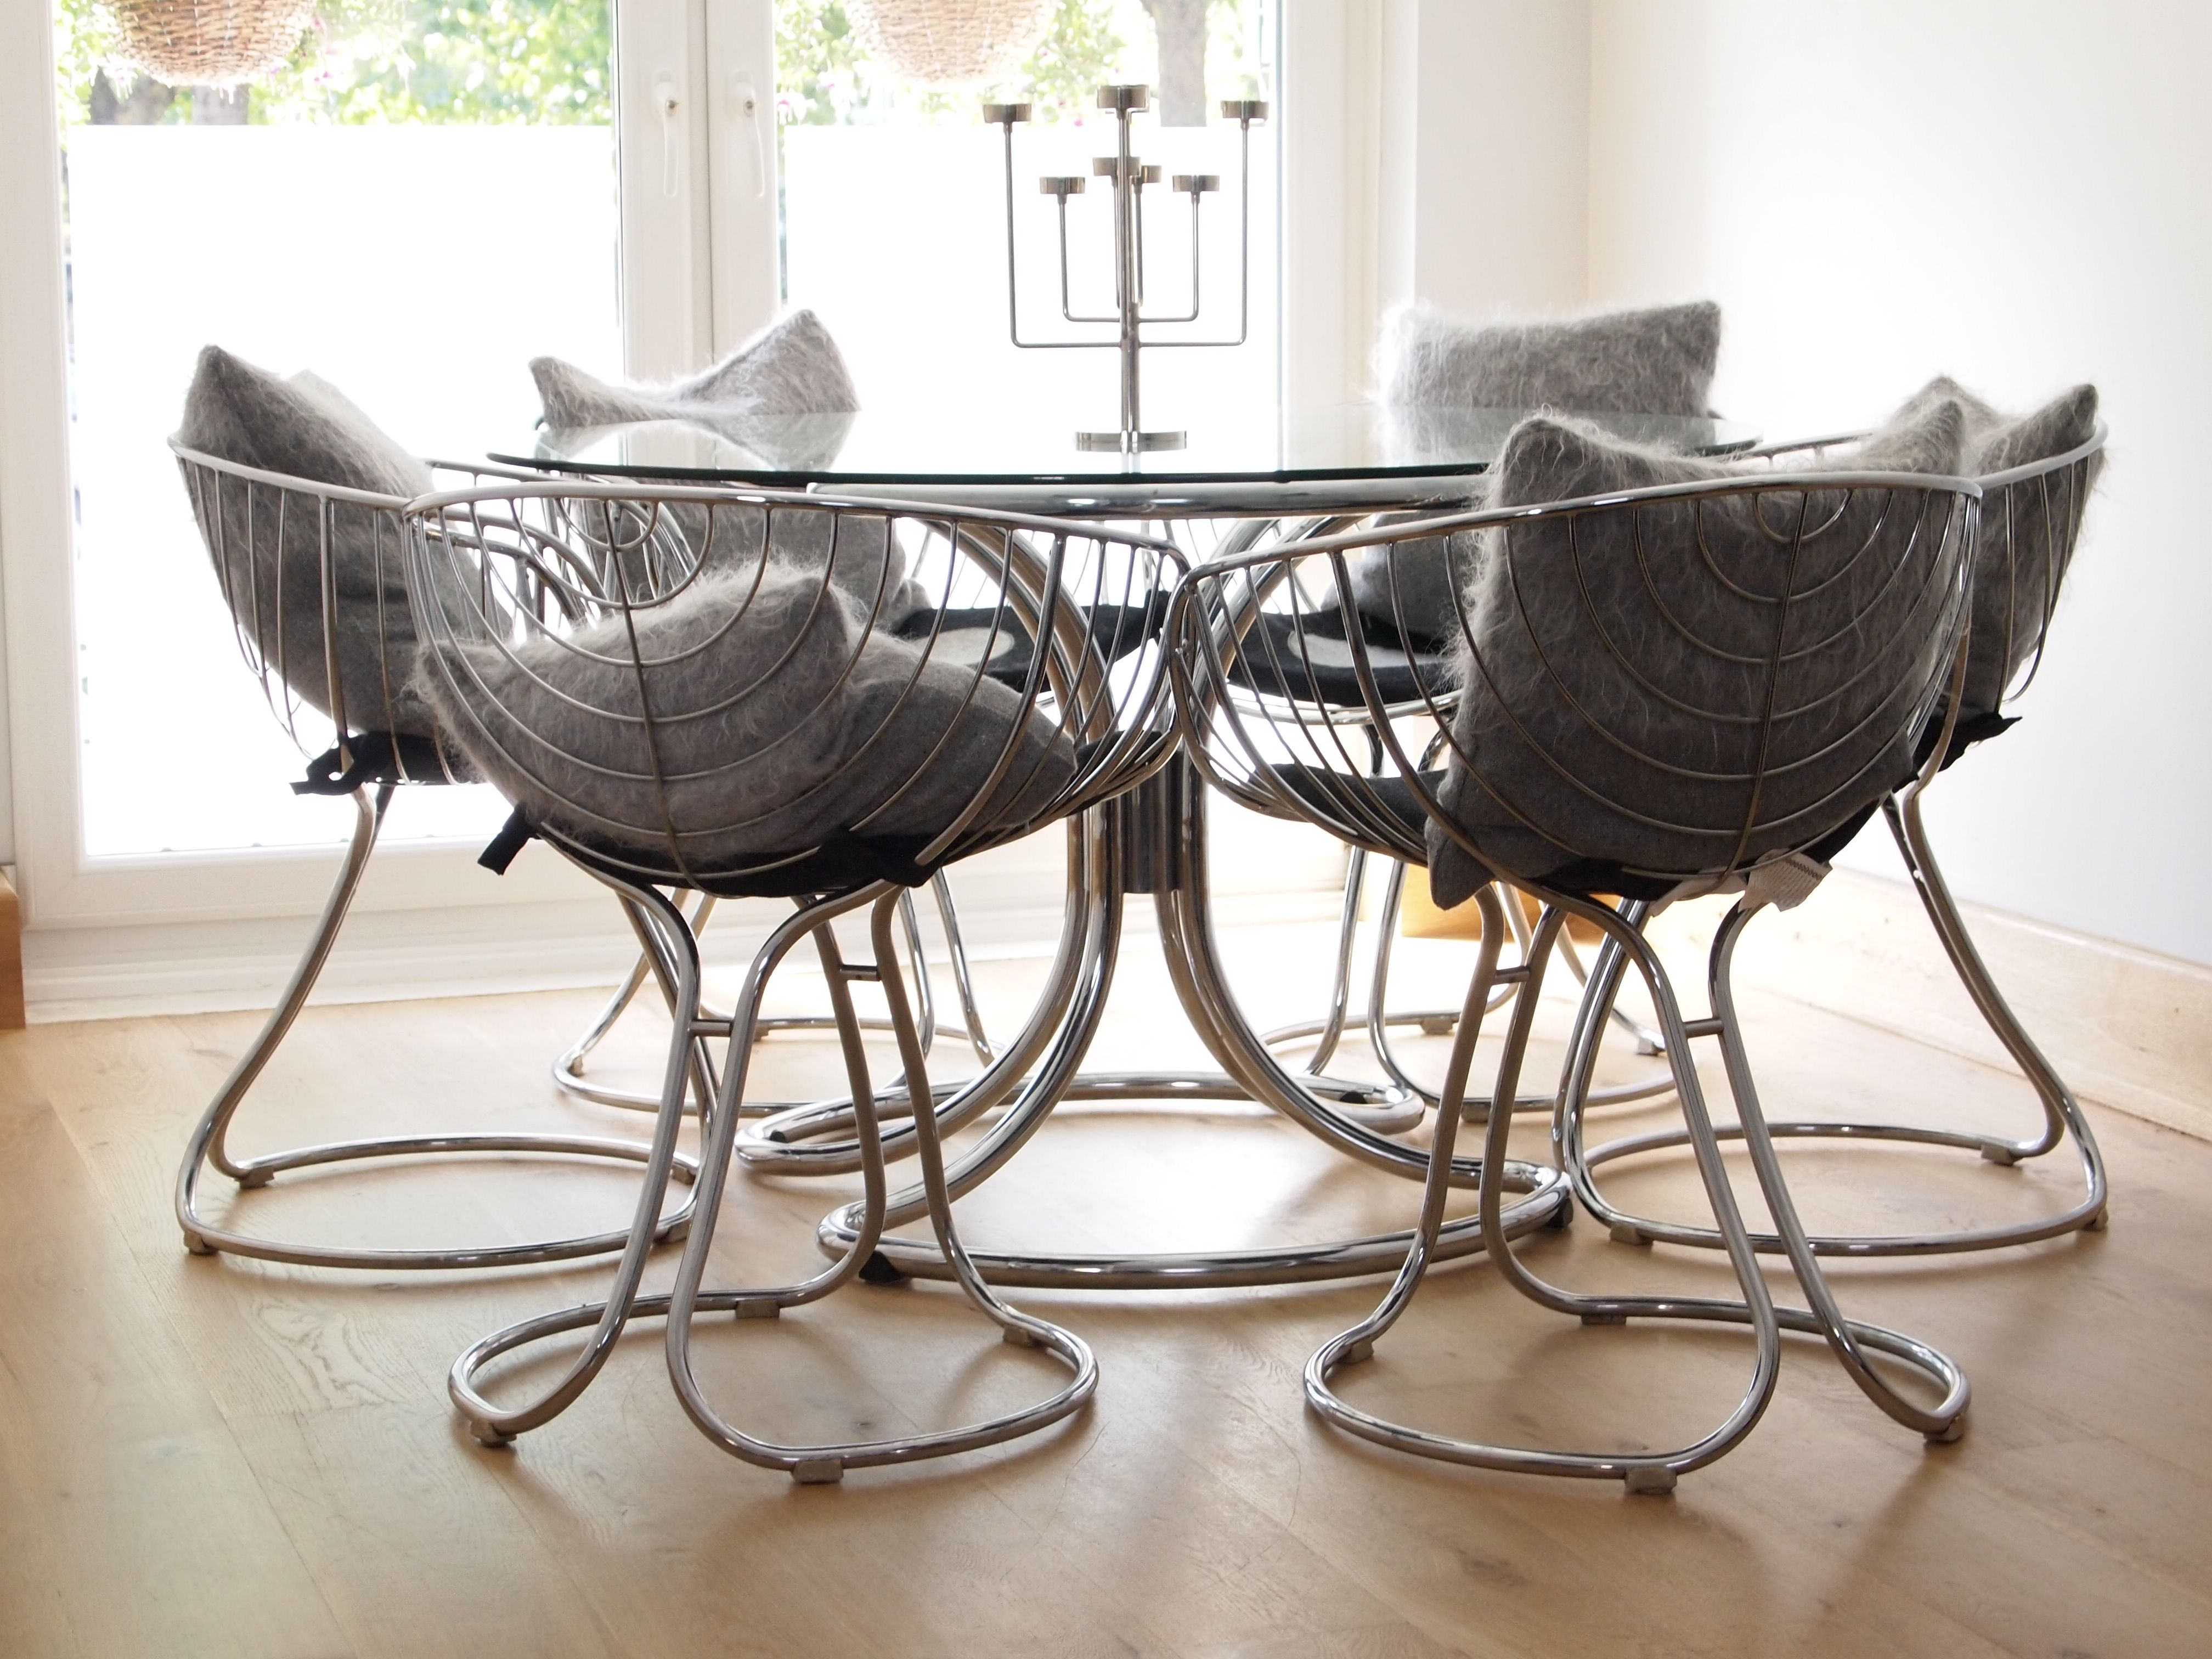 Chrome Table and Tulip chairs in all their 70's glory